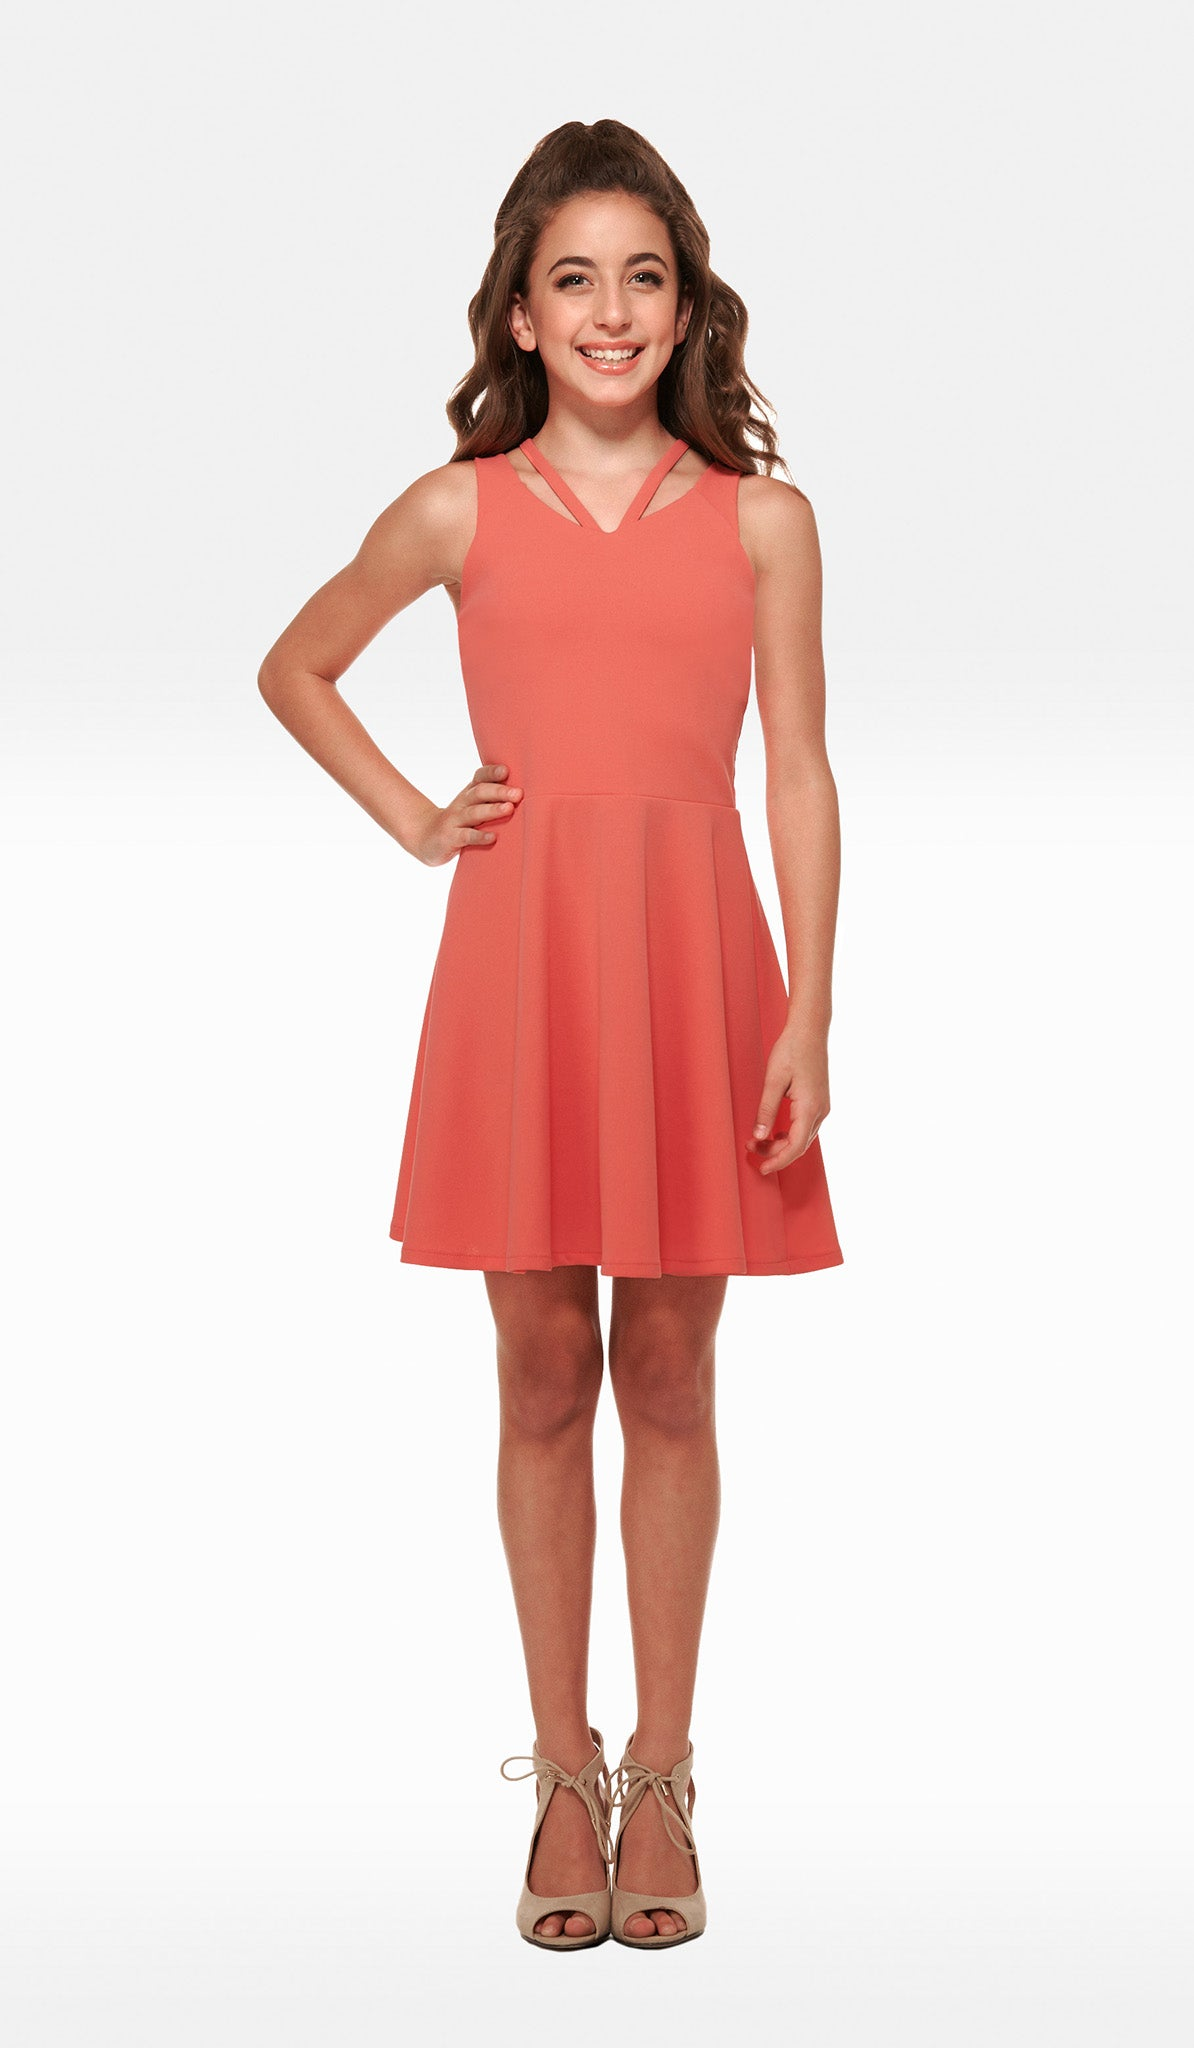 THE GEORGIA DRESS - Sallymiller.com - [variant title] - | Event & Party Dresses for Tween Girls & Juniors | Weddings Dresses, Bat Mitzvah Dresses, Sweet Sixteen Dresses, Graduation Dresses, Birthday Party Dresses, Bar Mitzvah Dresses, Cotillion Dresses